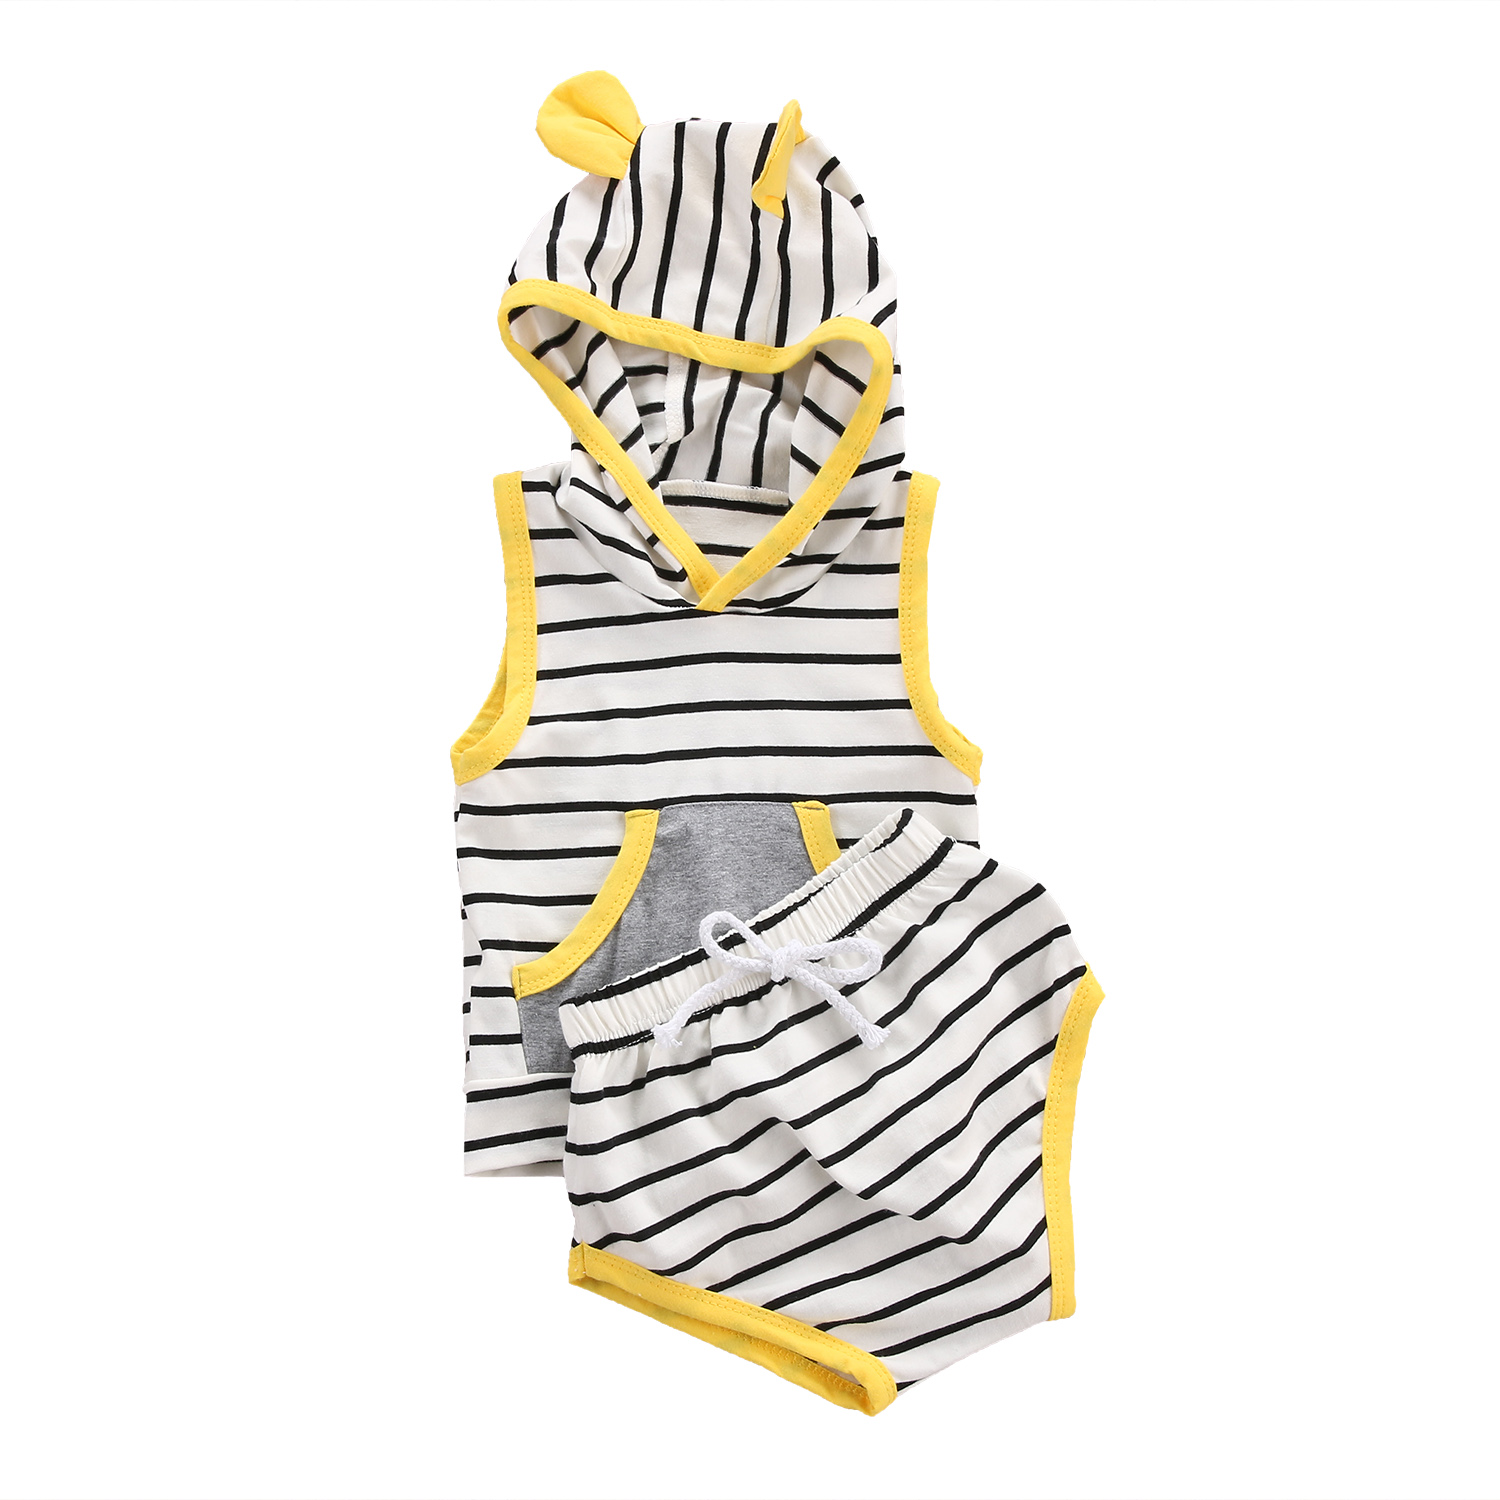 2pc/Set New Casual Toddler Infant Baby Kids Outfits Set Boy Girls Striped Hooded T-shirt Tops+Short Pants Clothing Sets